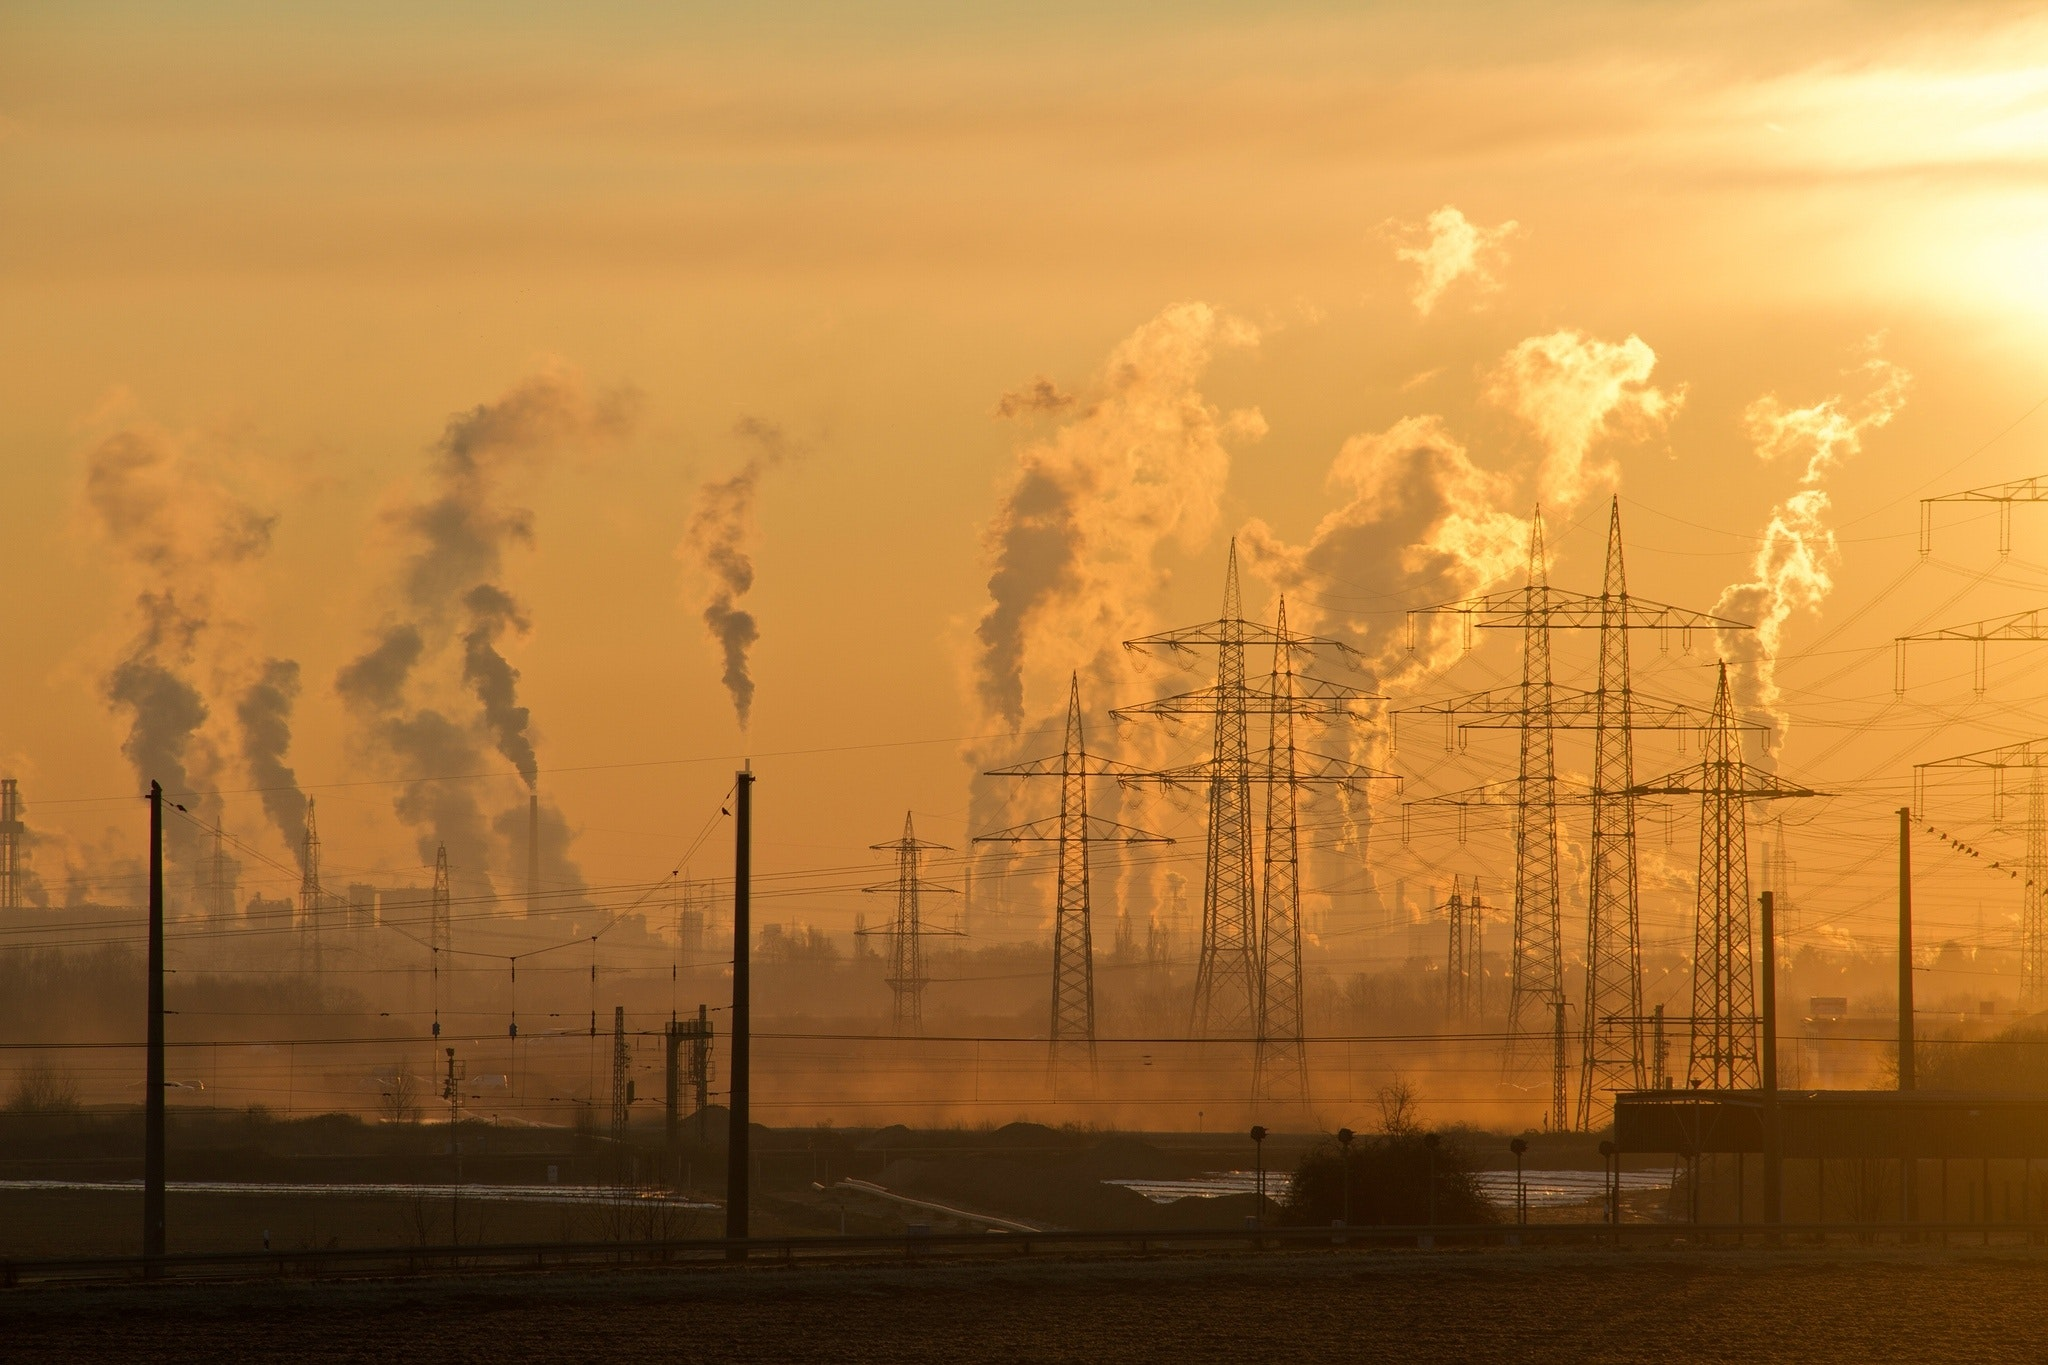 Global warming from power stations generating electricity